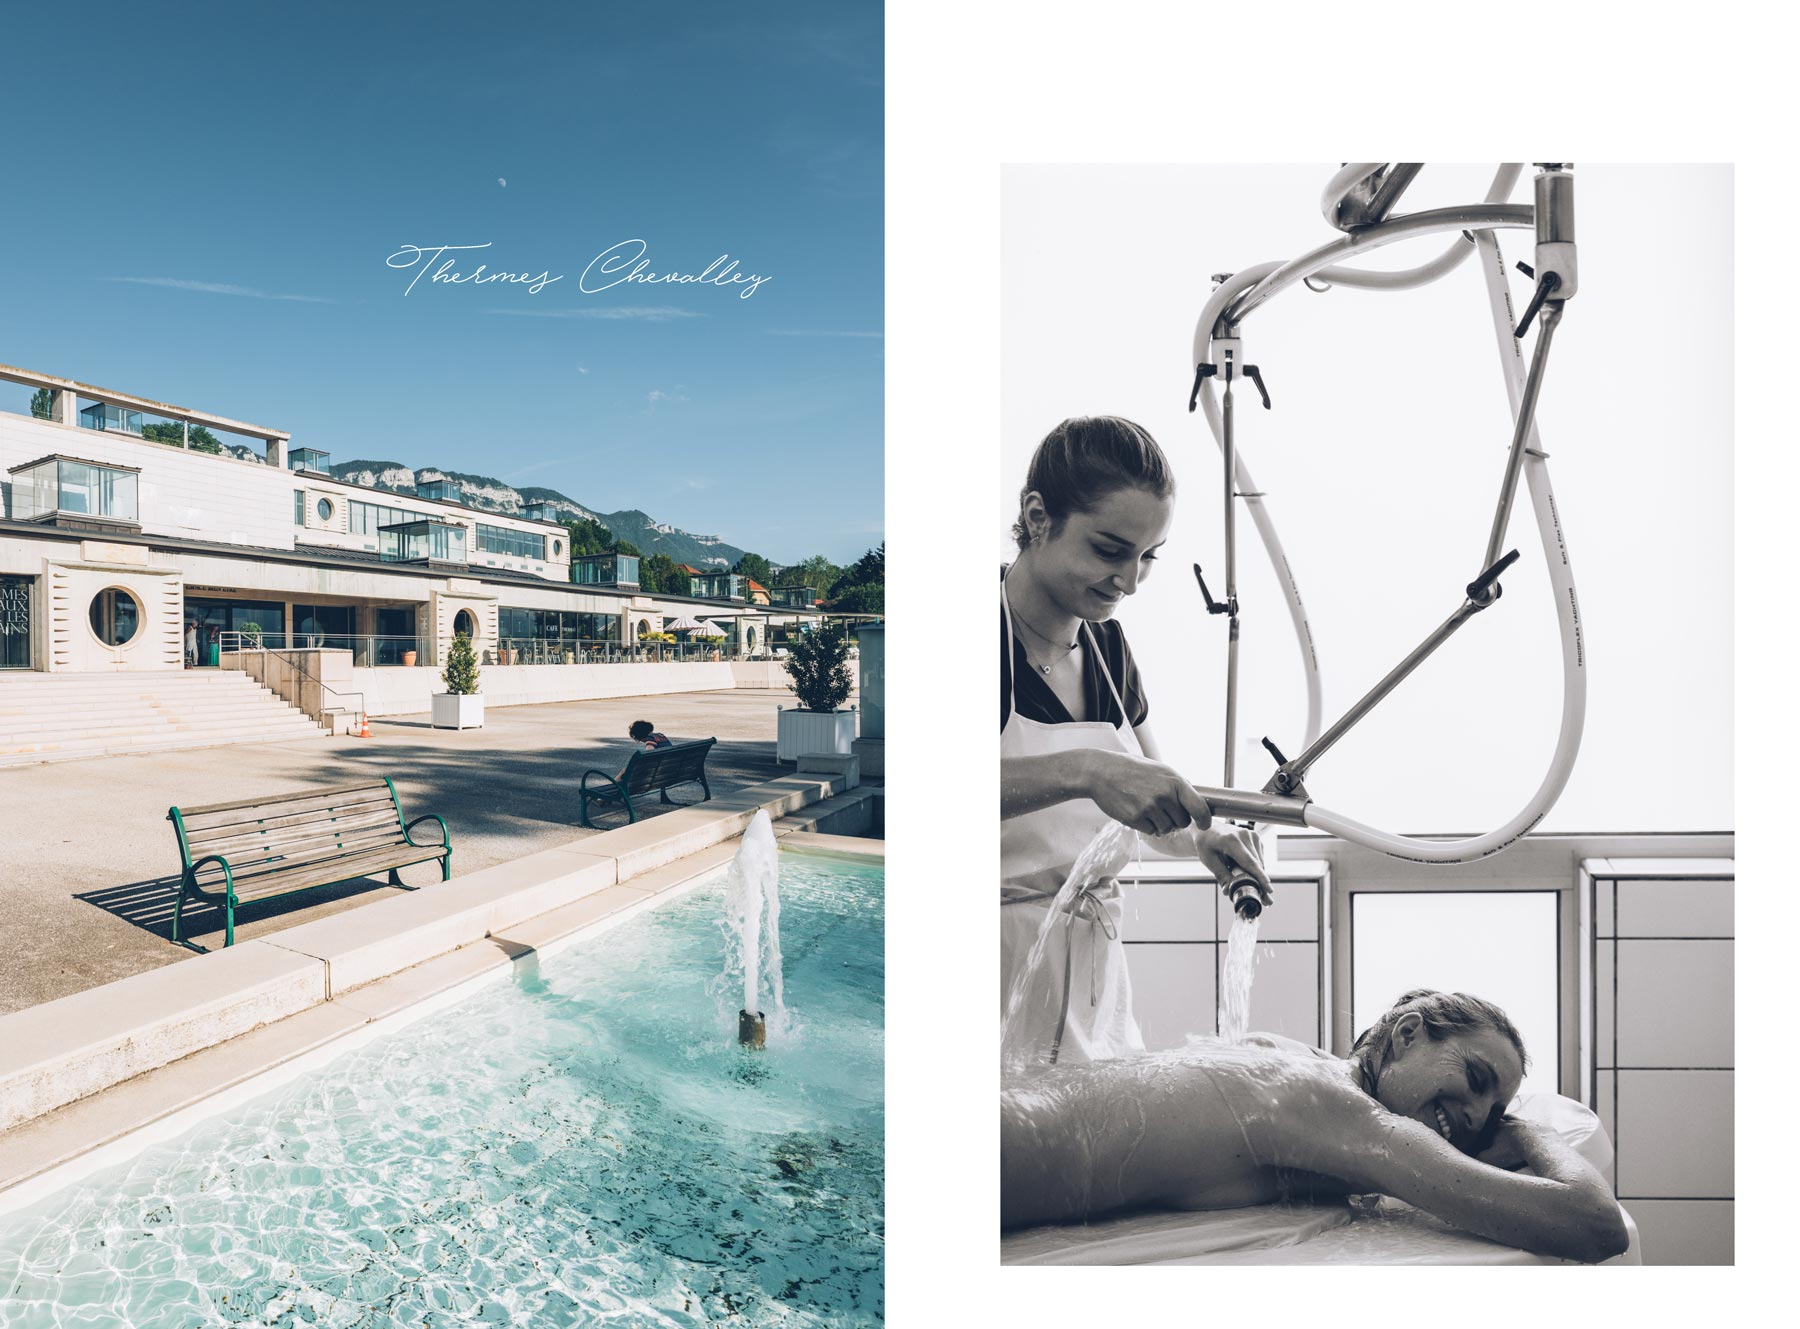 Thermes Chevalley, Aix les Bains